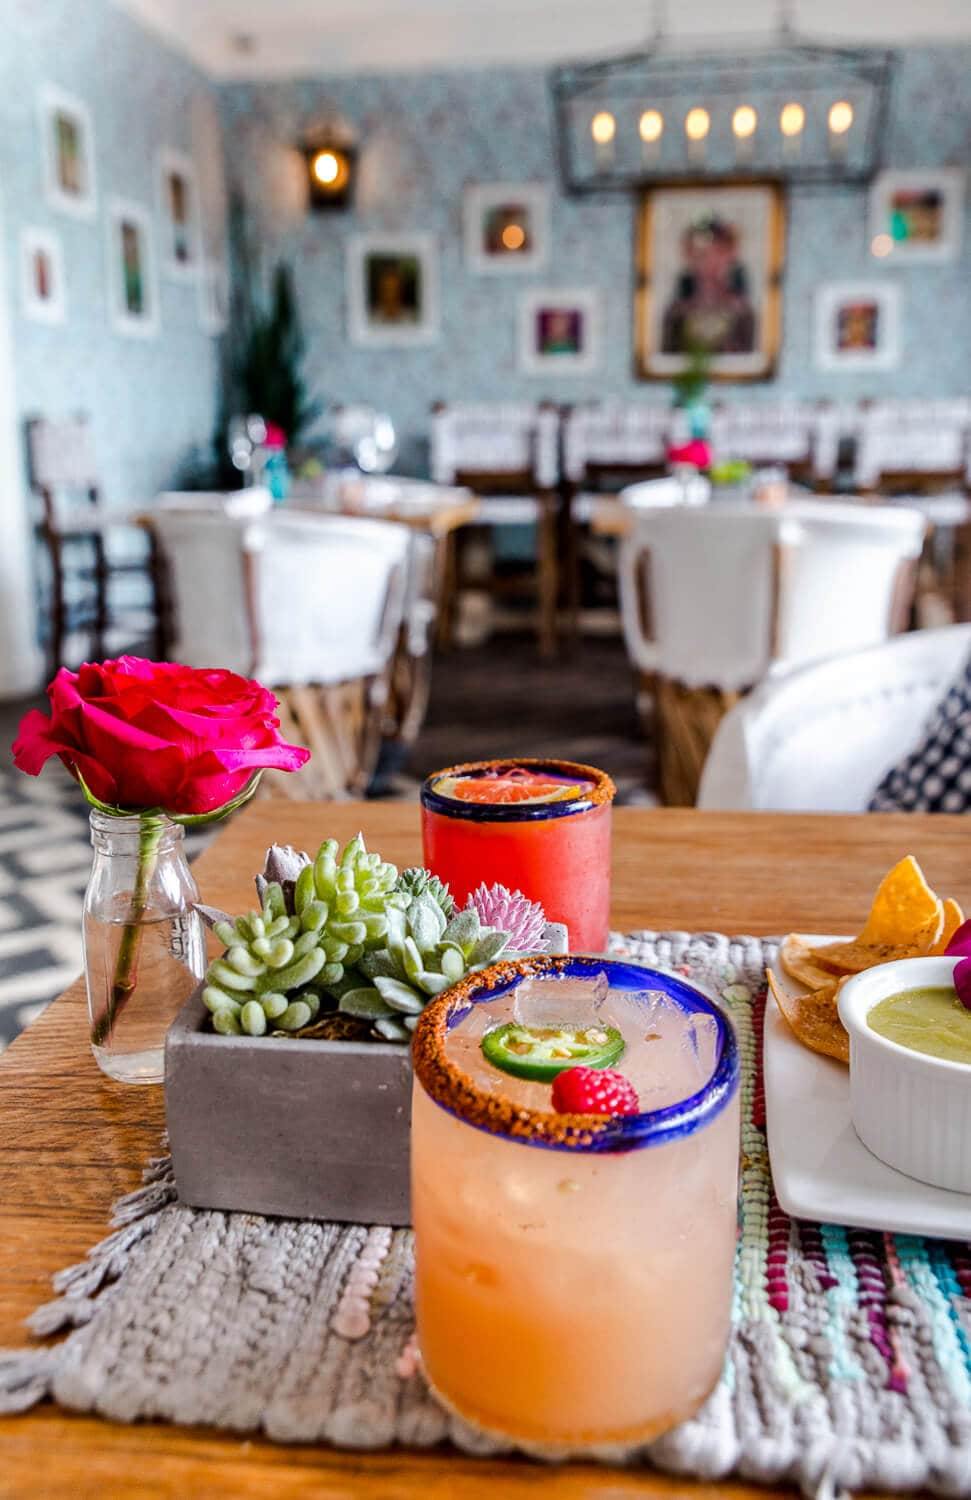 From the best happy hours to a $4.95 bottomless champagne brunch, and the city's most instagrammable locations, here are 15 local gems you must visit during your next Palm Springs, California getaway.